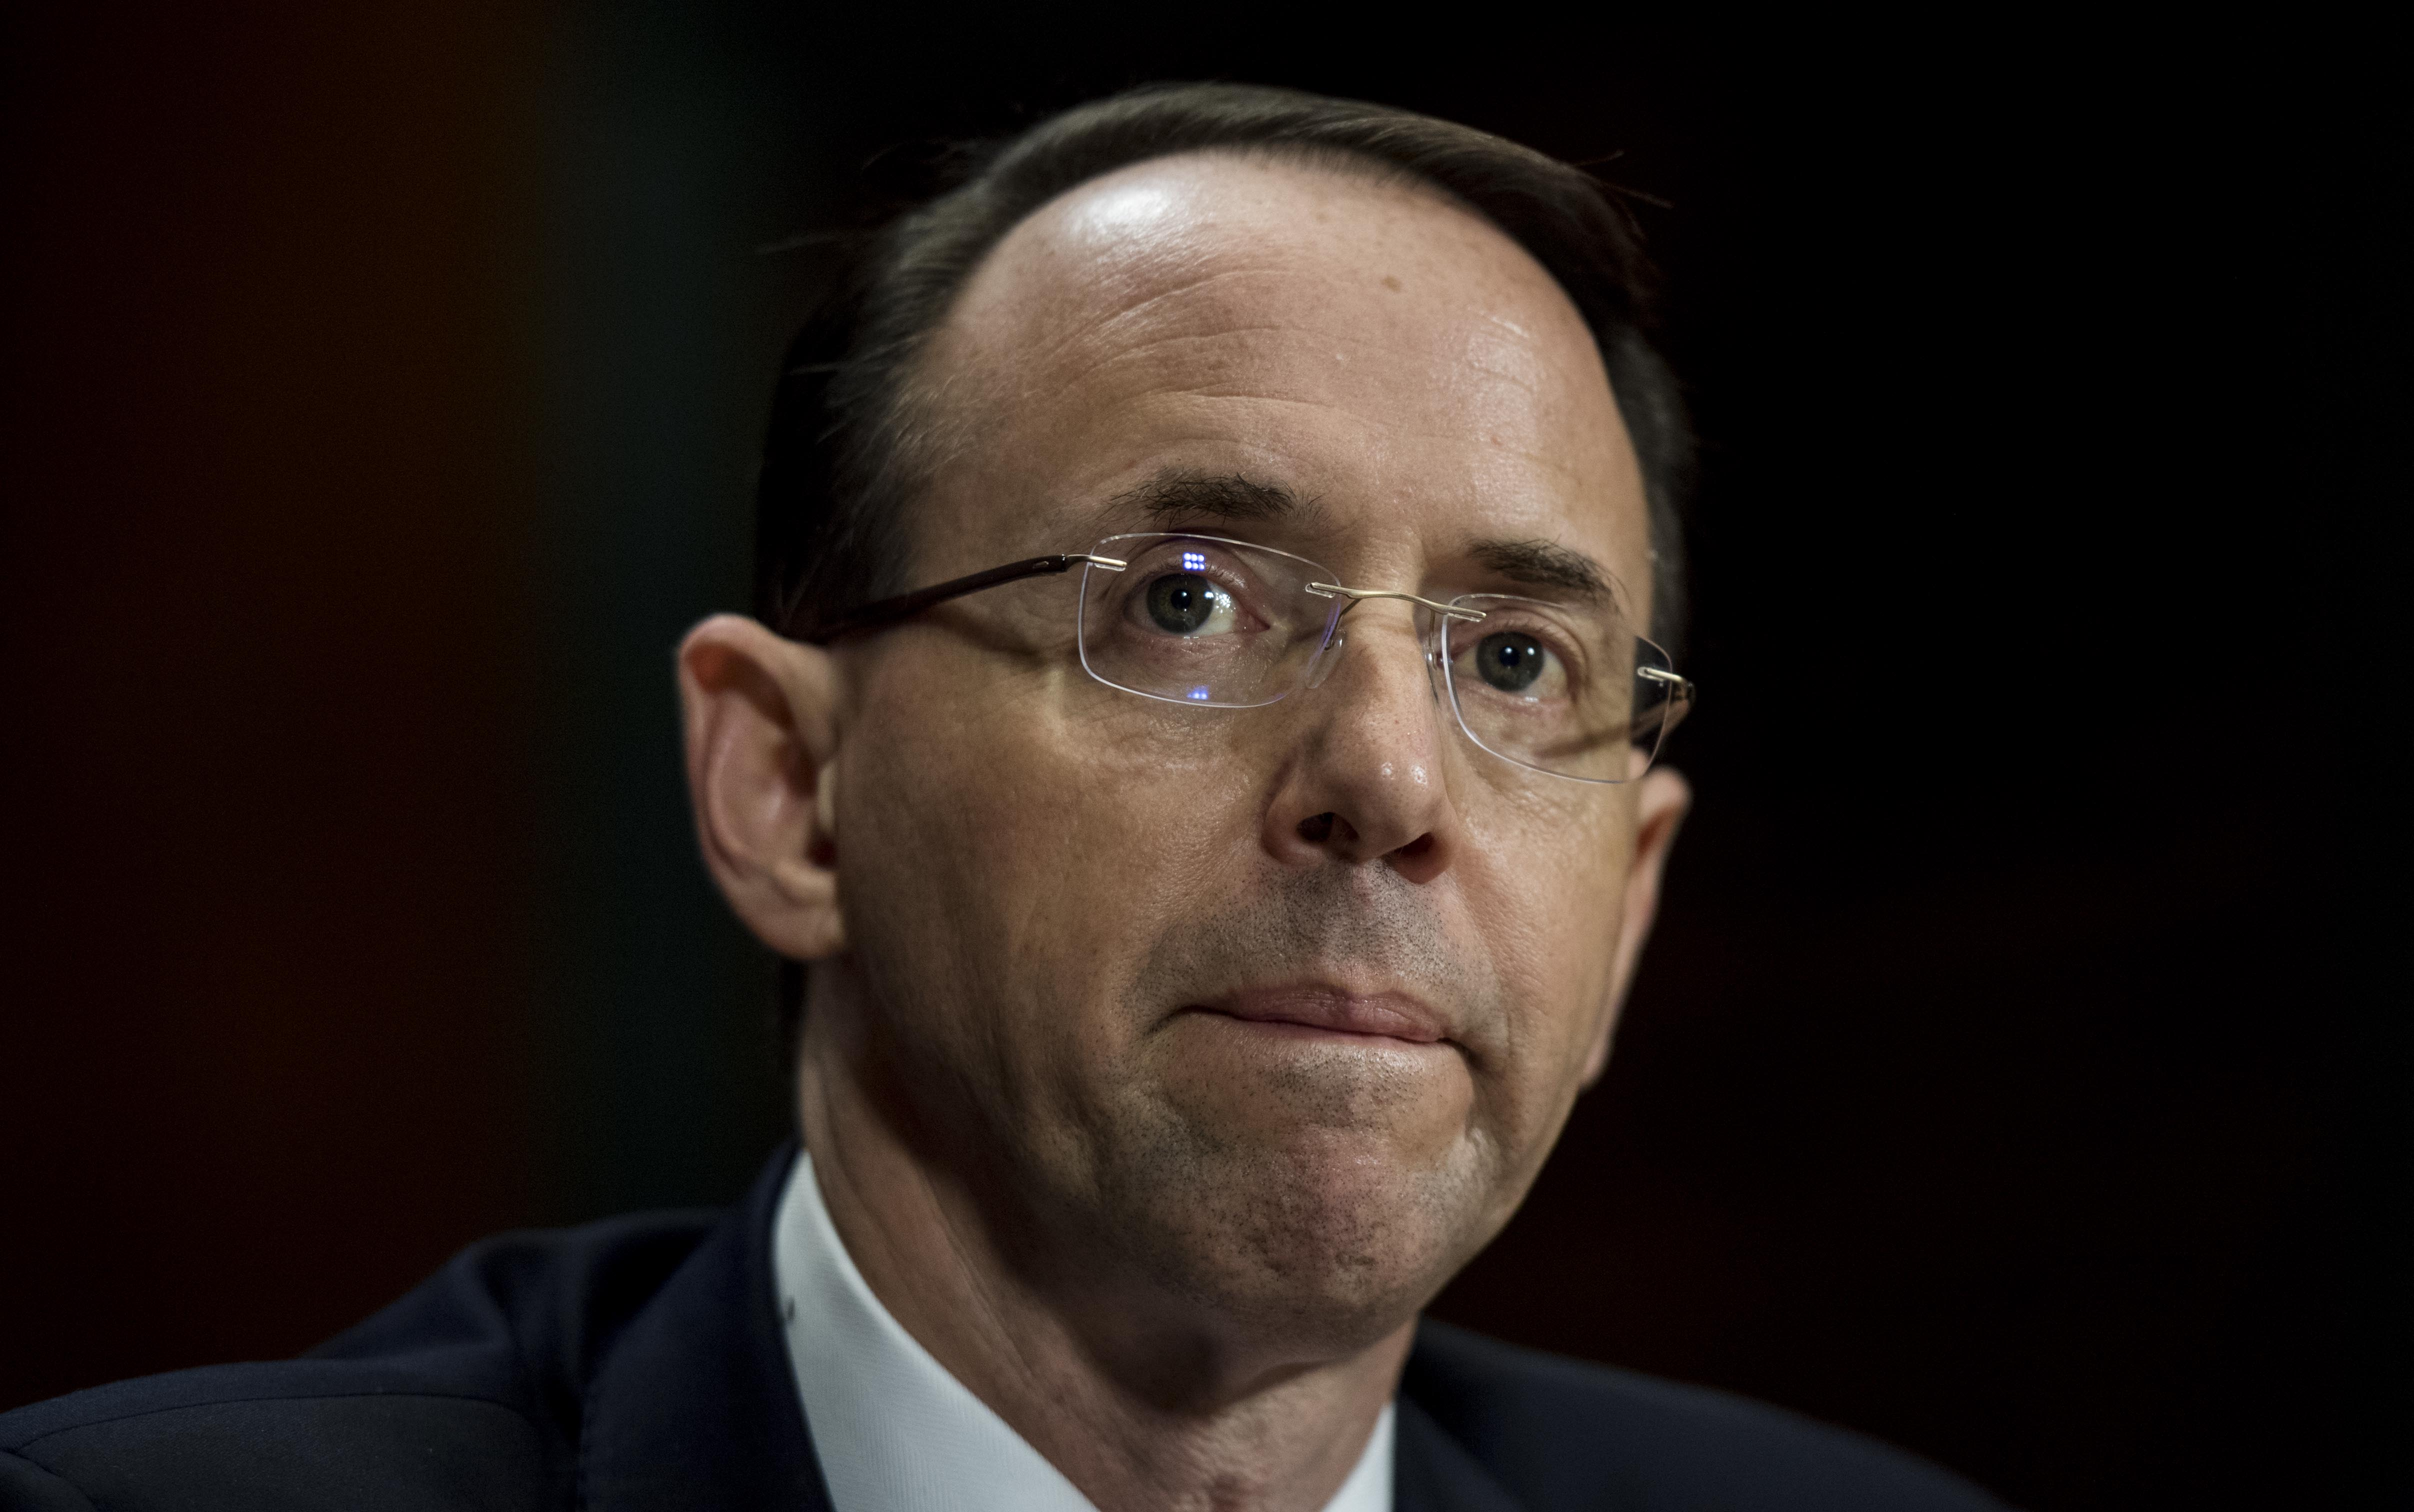 Deputy Attorney General Rod Rosenstein appears before the Senate Judiciary Committee on Capitol Hill in Washington, DC, March 7, 2017.